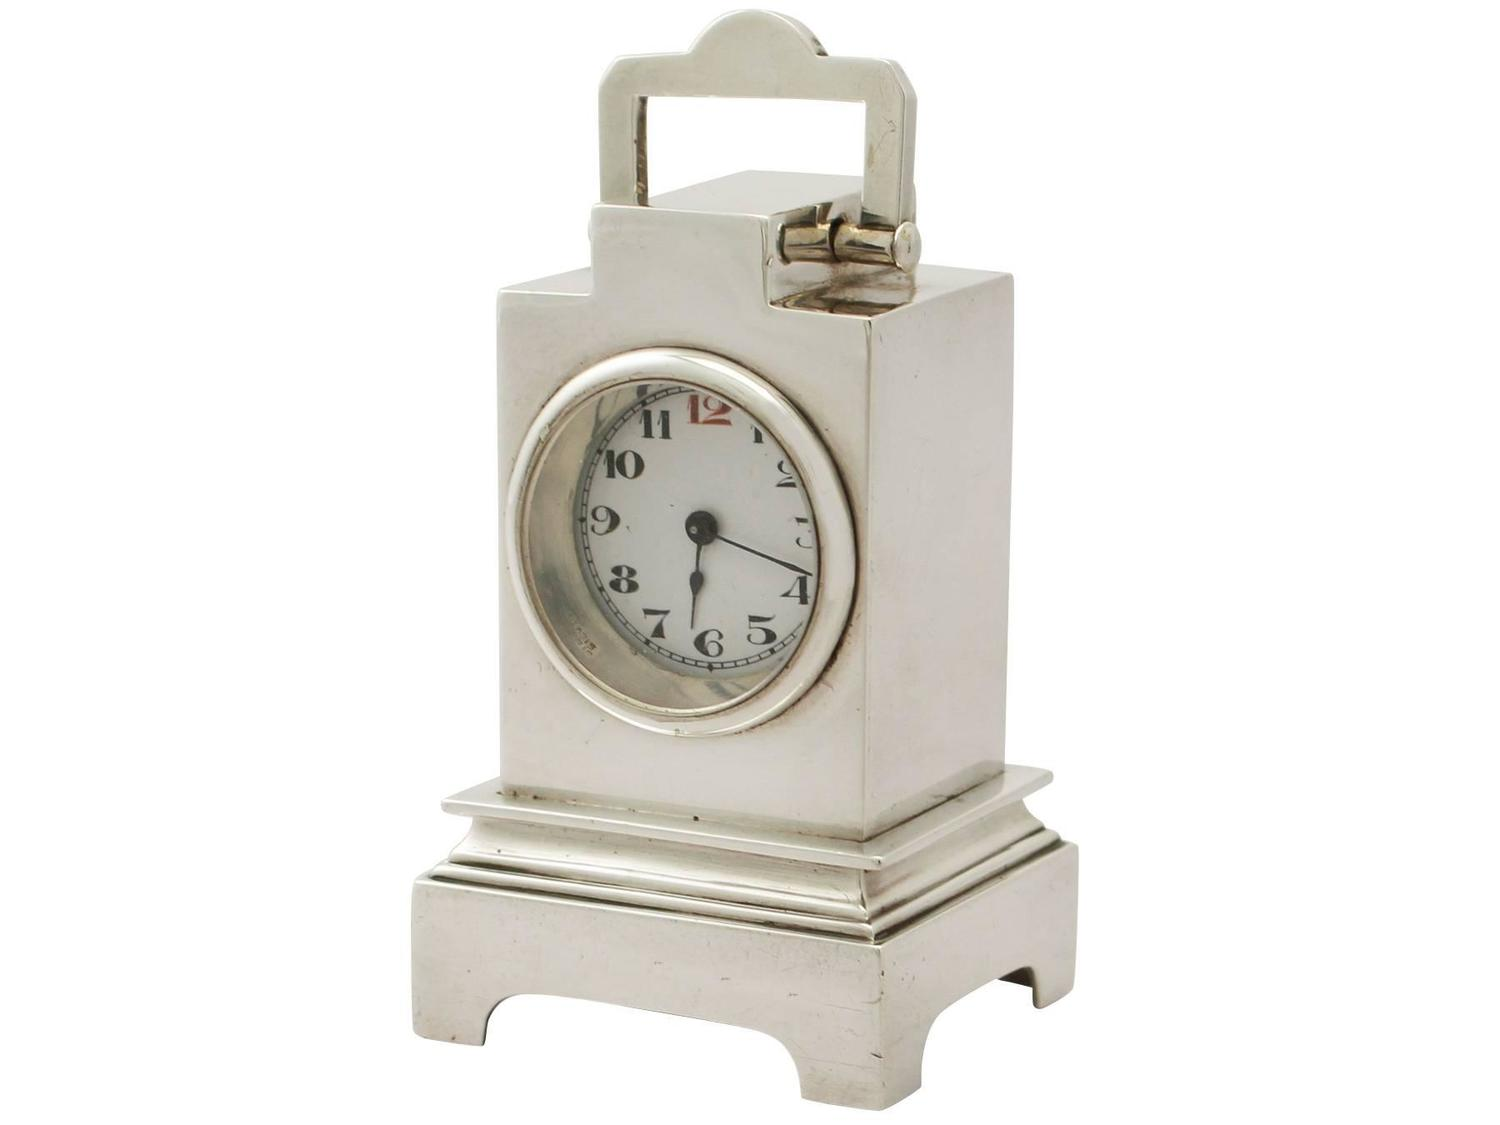 Sterling silver boudoir alarm clock art deco style Art deco alarm clocks